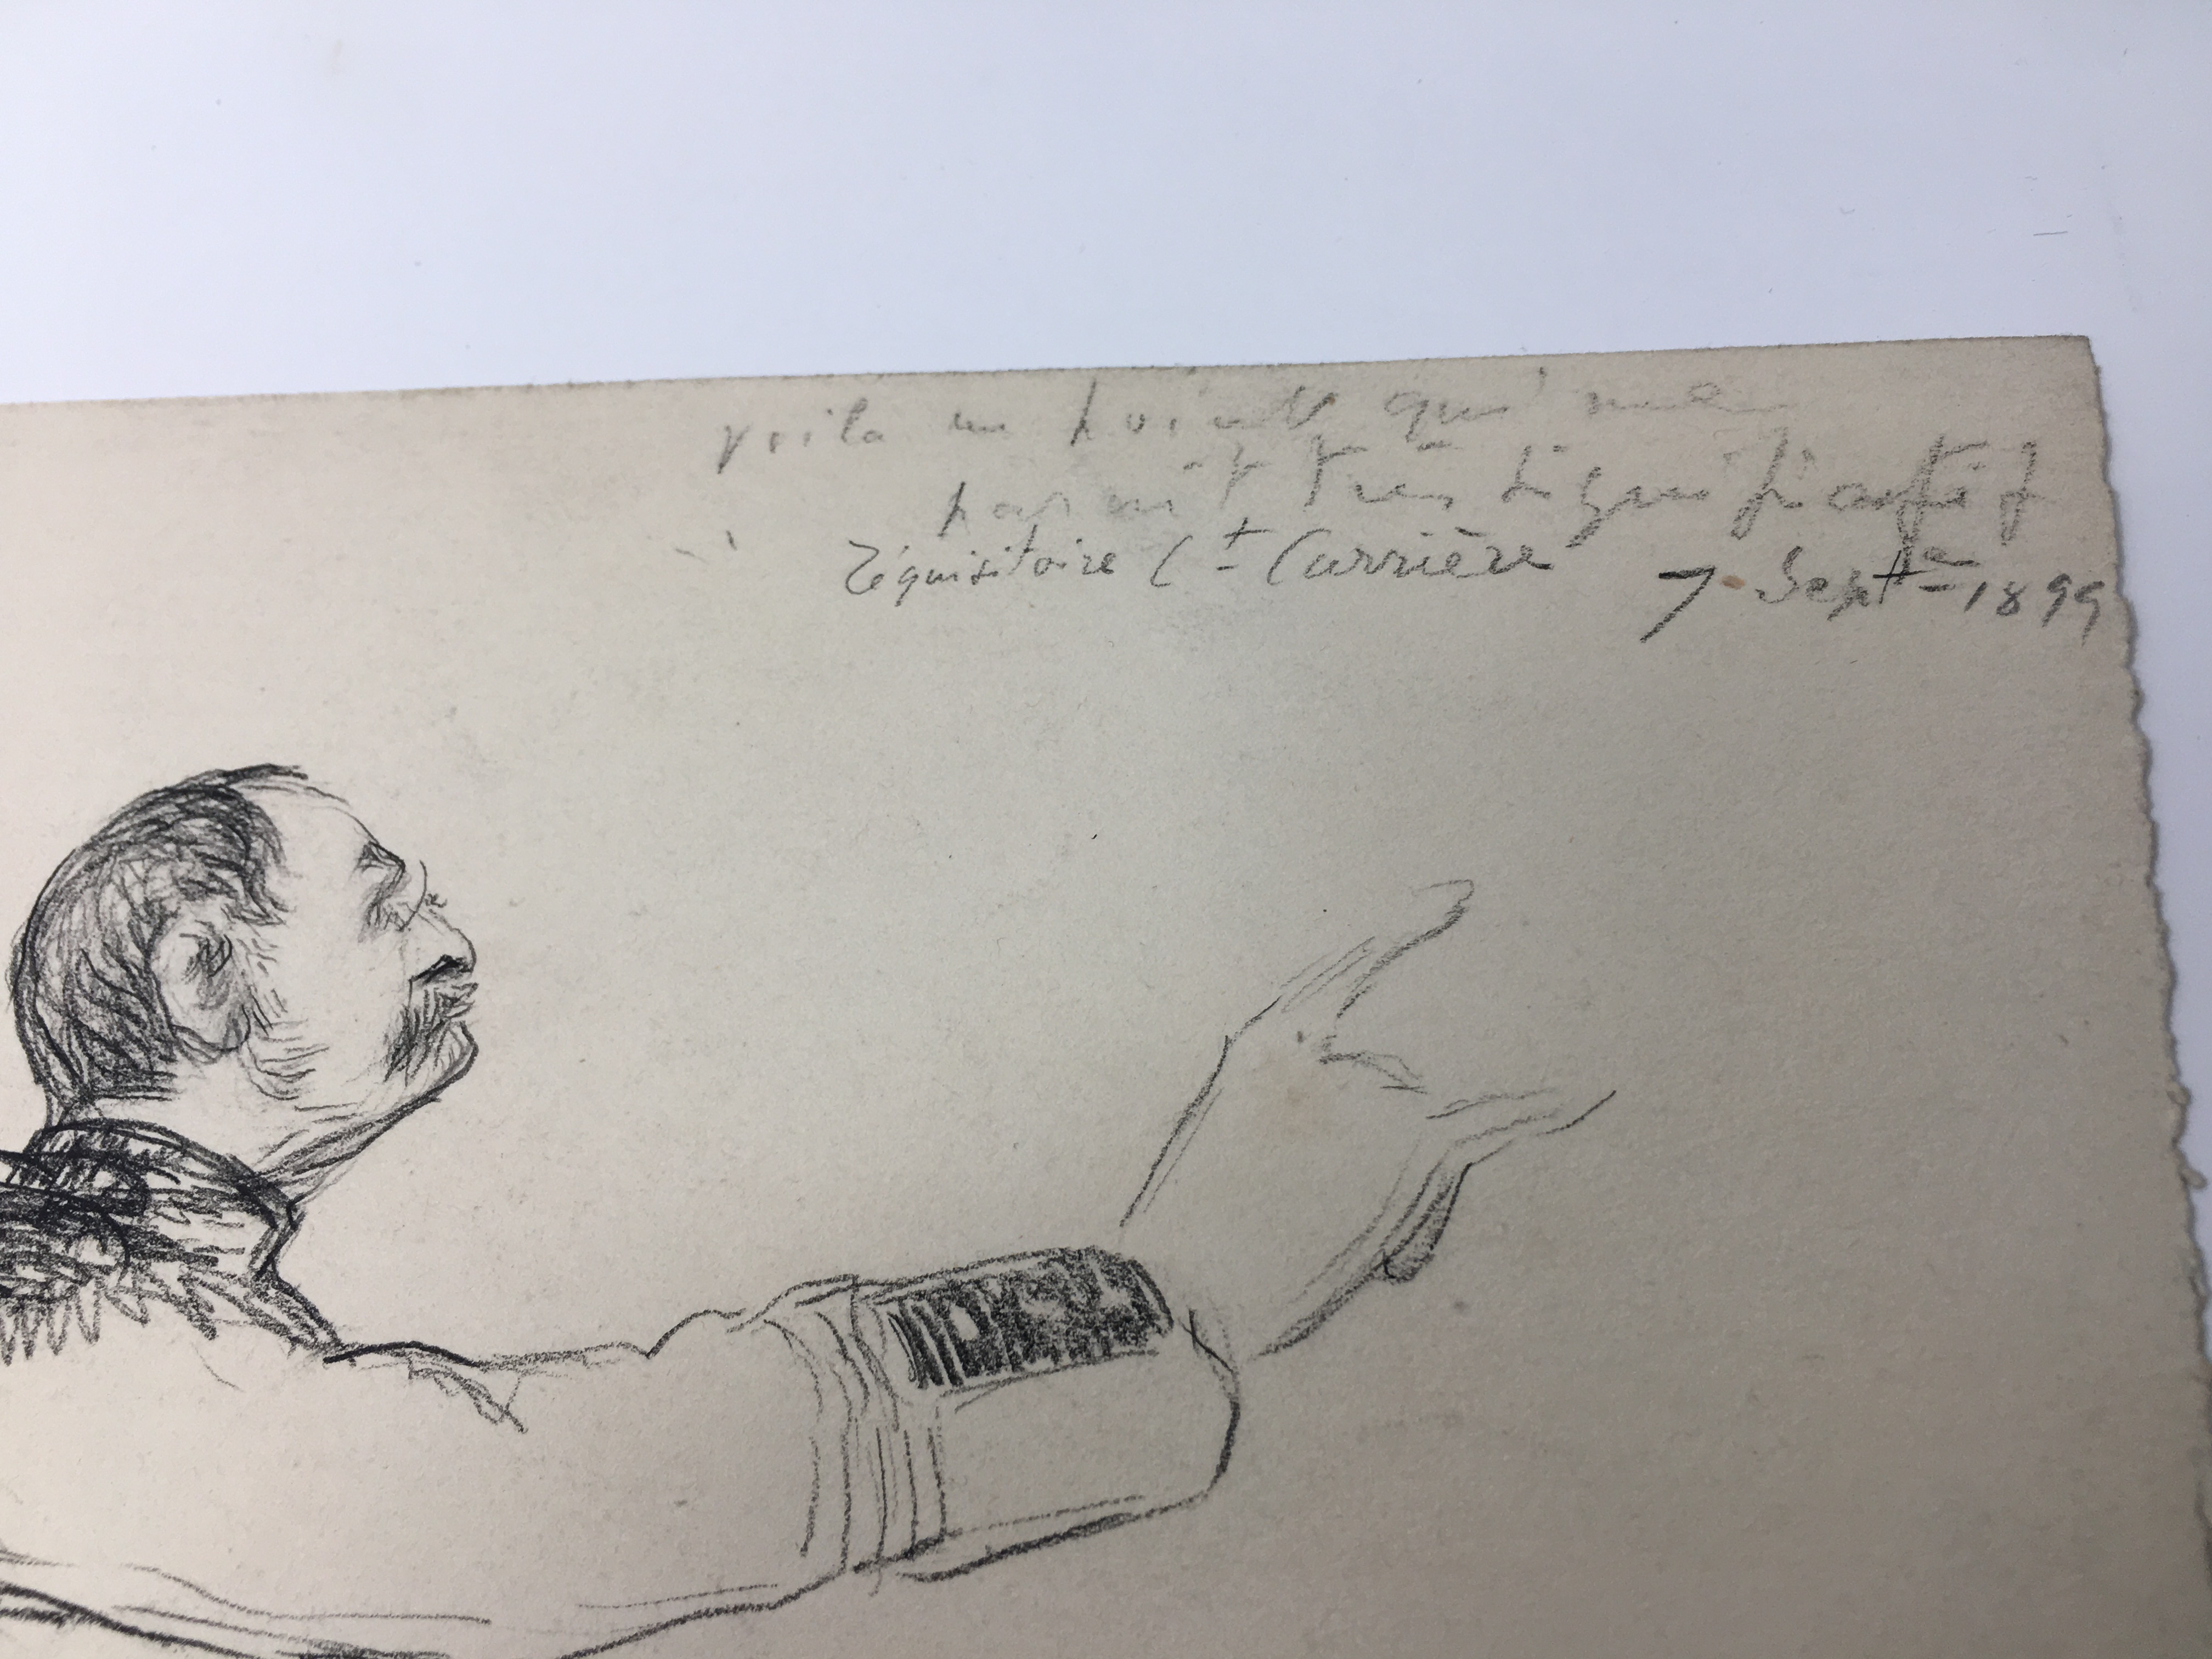 J'Accuse Newspaper, Emile Zola Quote, Signed Dreyfus Portrait, Rare Trial Drawings & Schwartzkoppen - Image 58 of 74